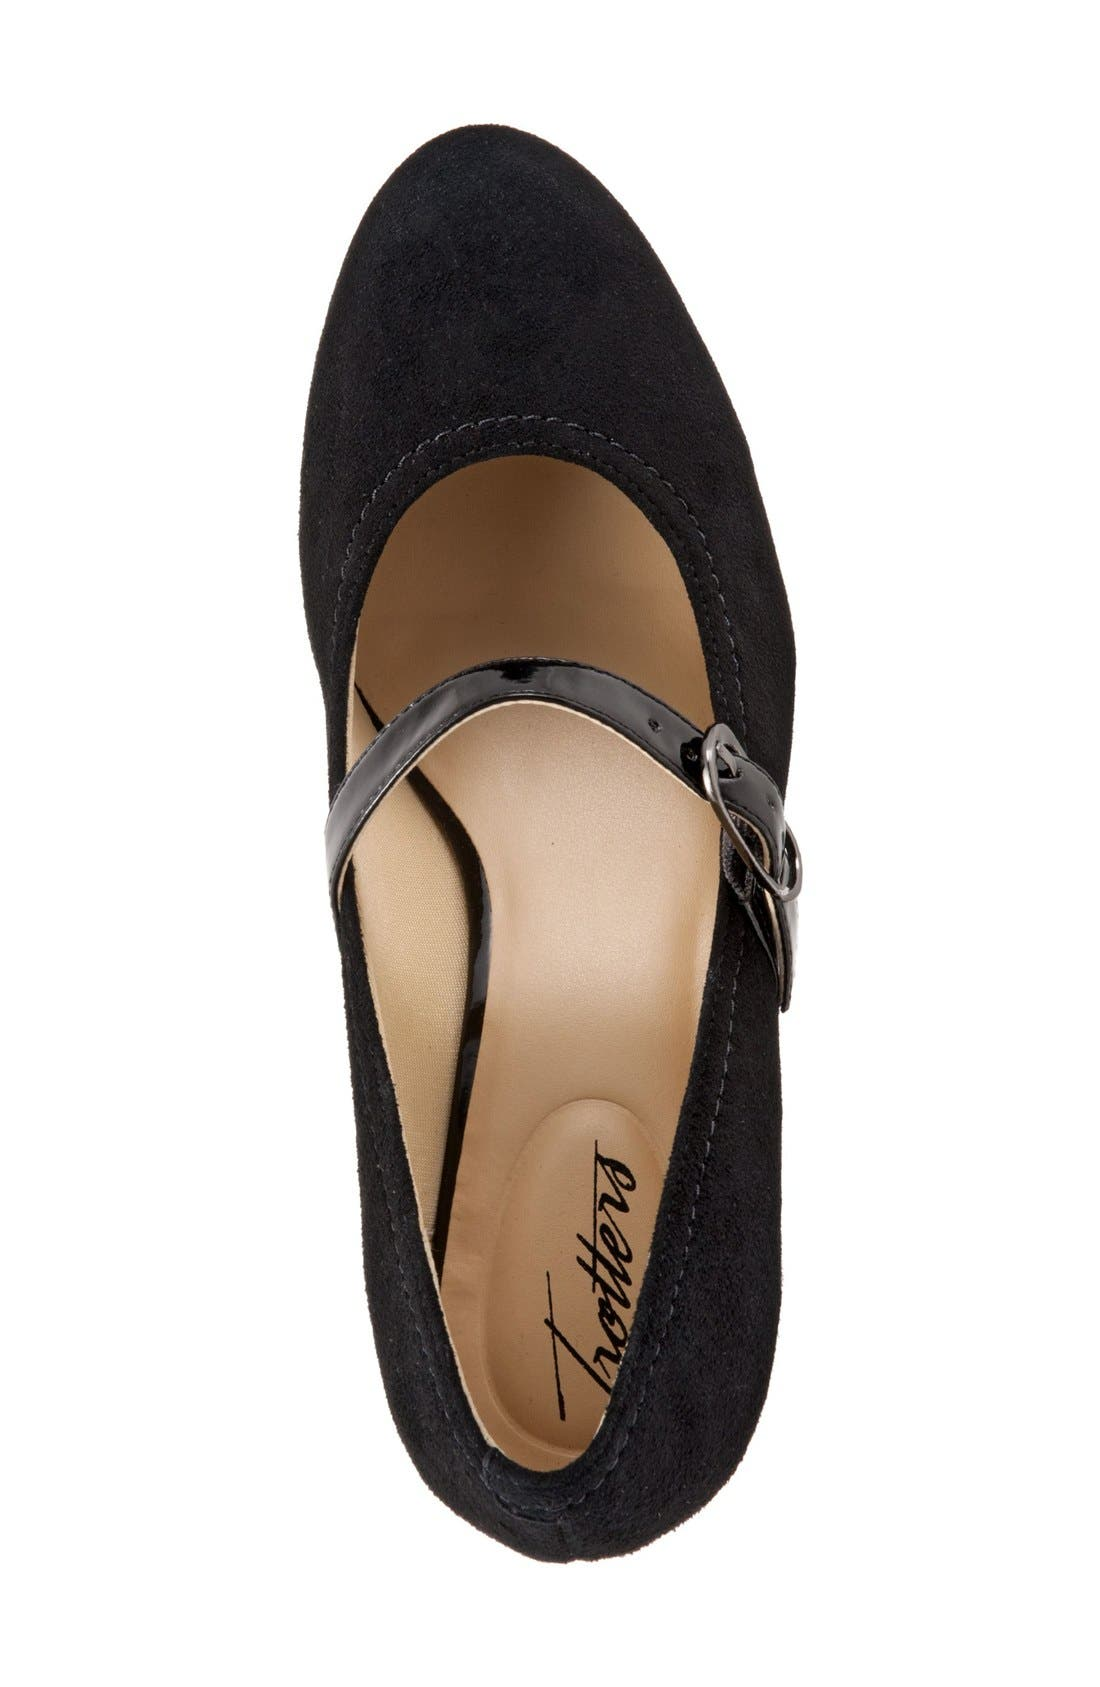 TROTTERS, 'Candice' Mary Jane Pump, Alternate thumbnail 2, color, BLACK SUEDE